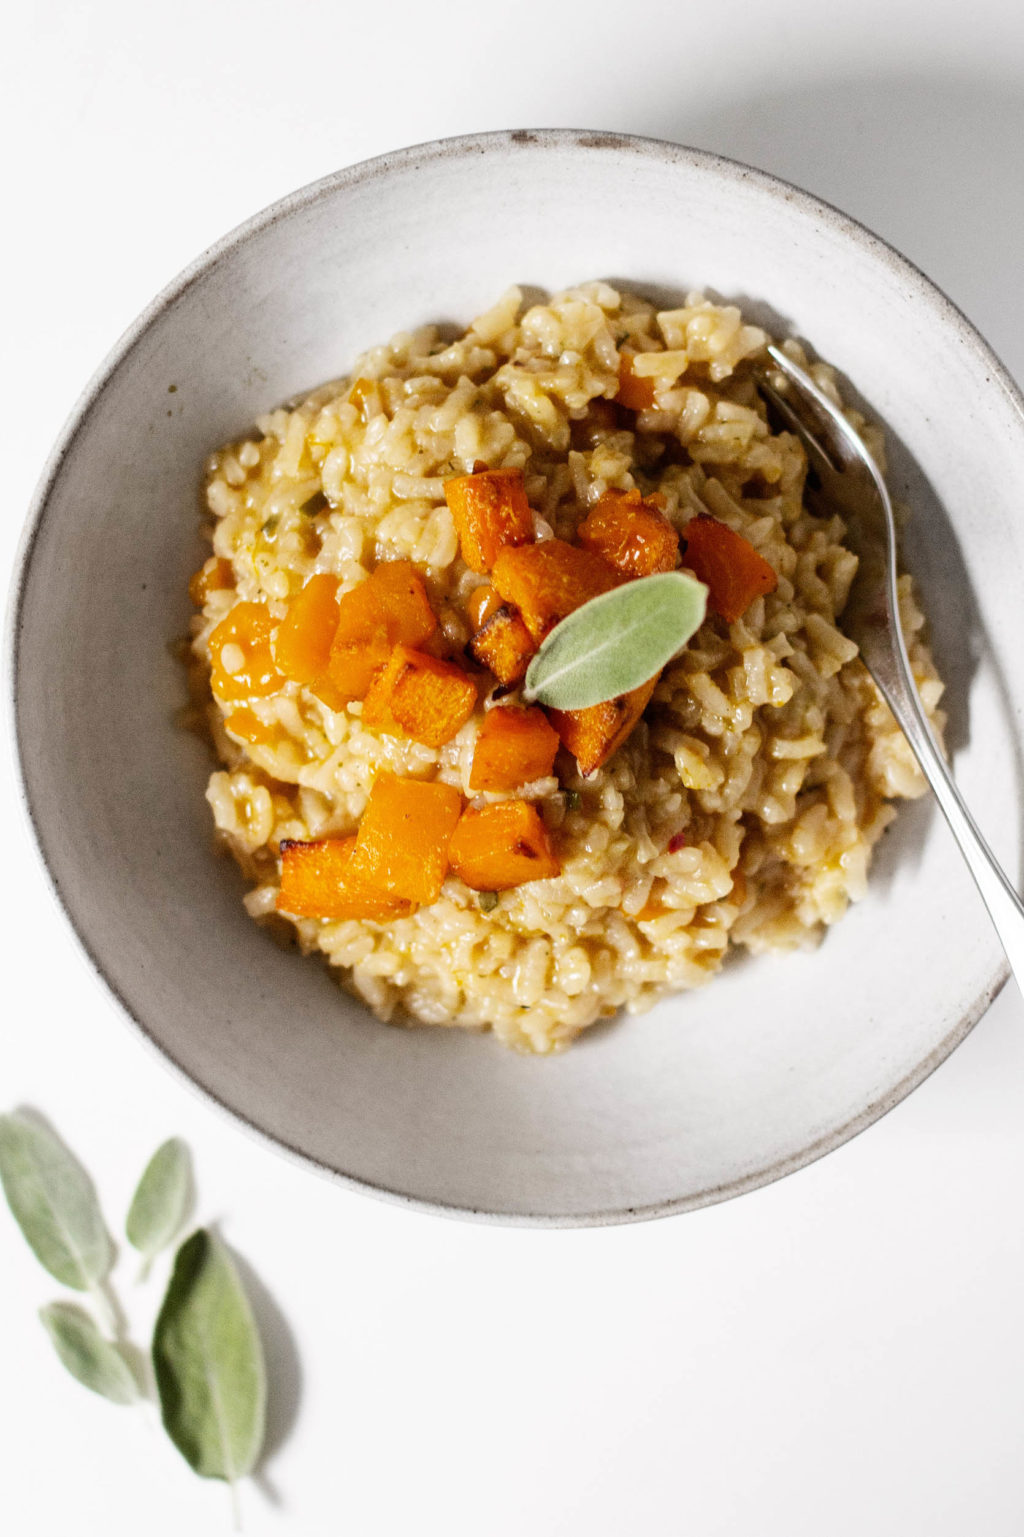 A bowl of autumn risotto with roasted butternut squash and sage leaves.